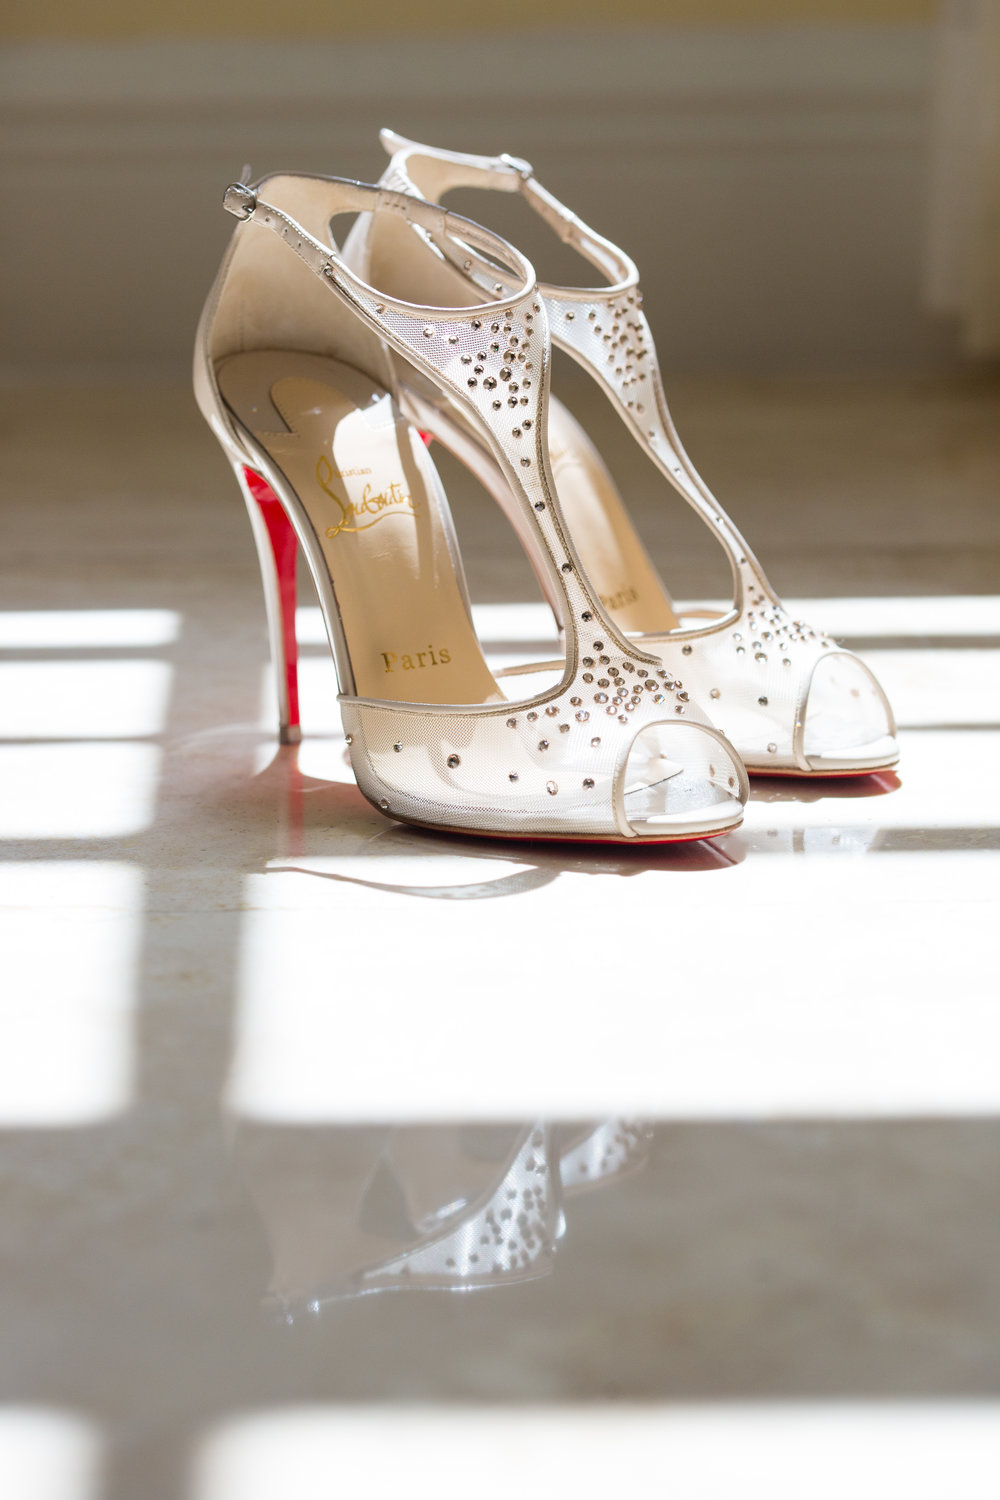 louboutin-wedding-shoes-copy.jpg